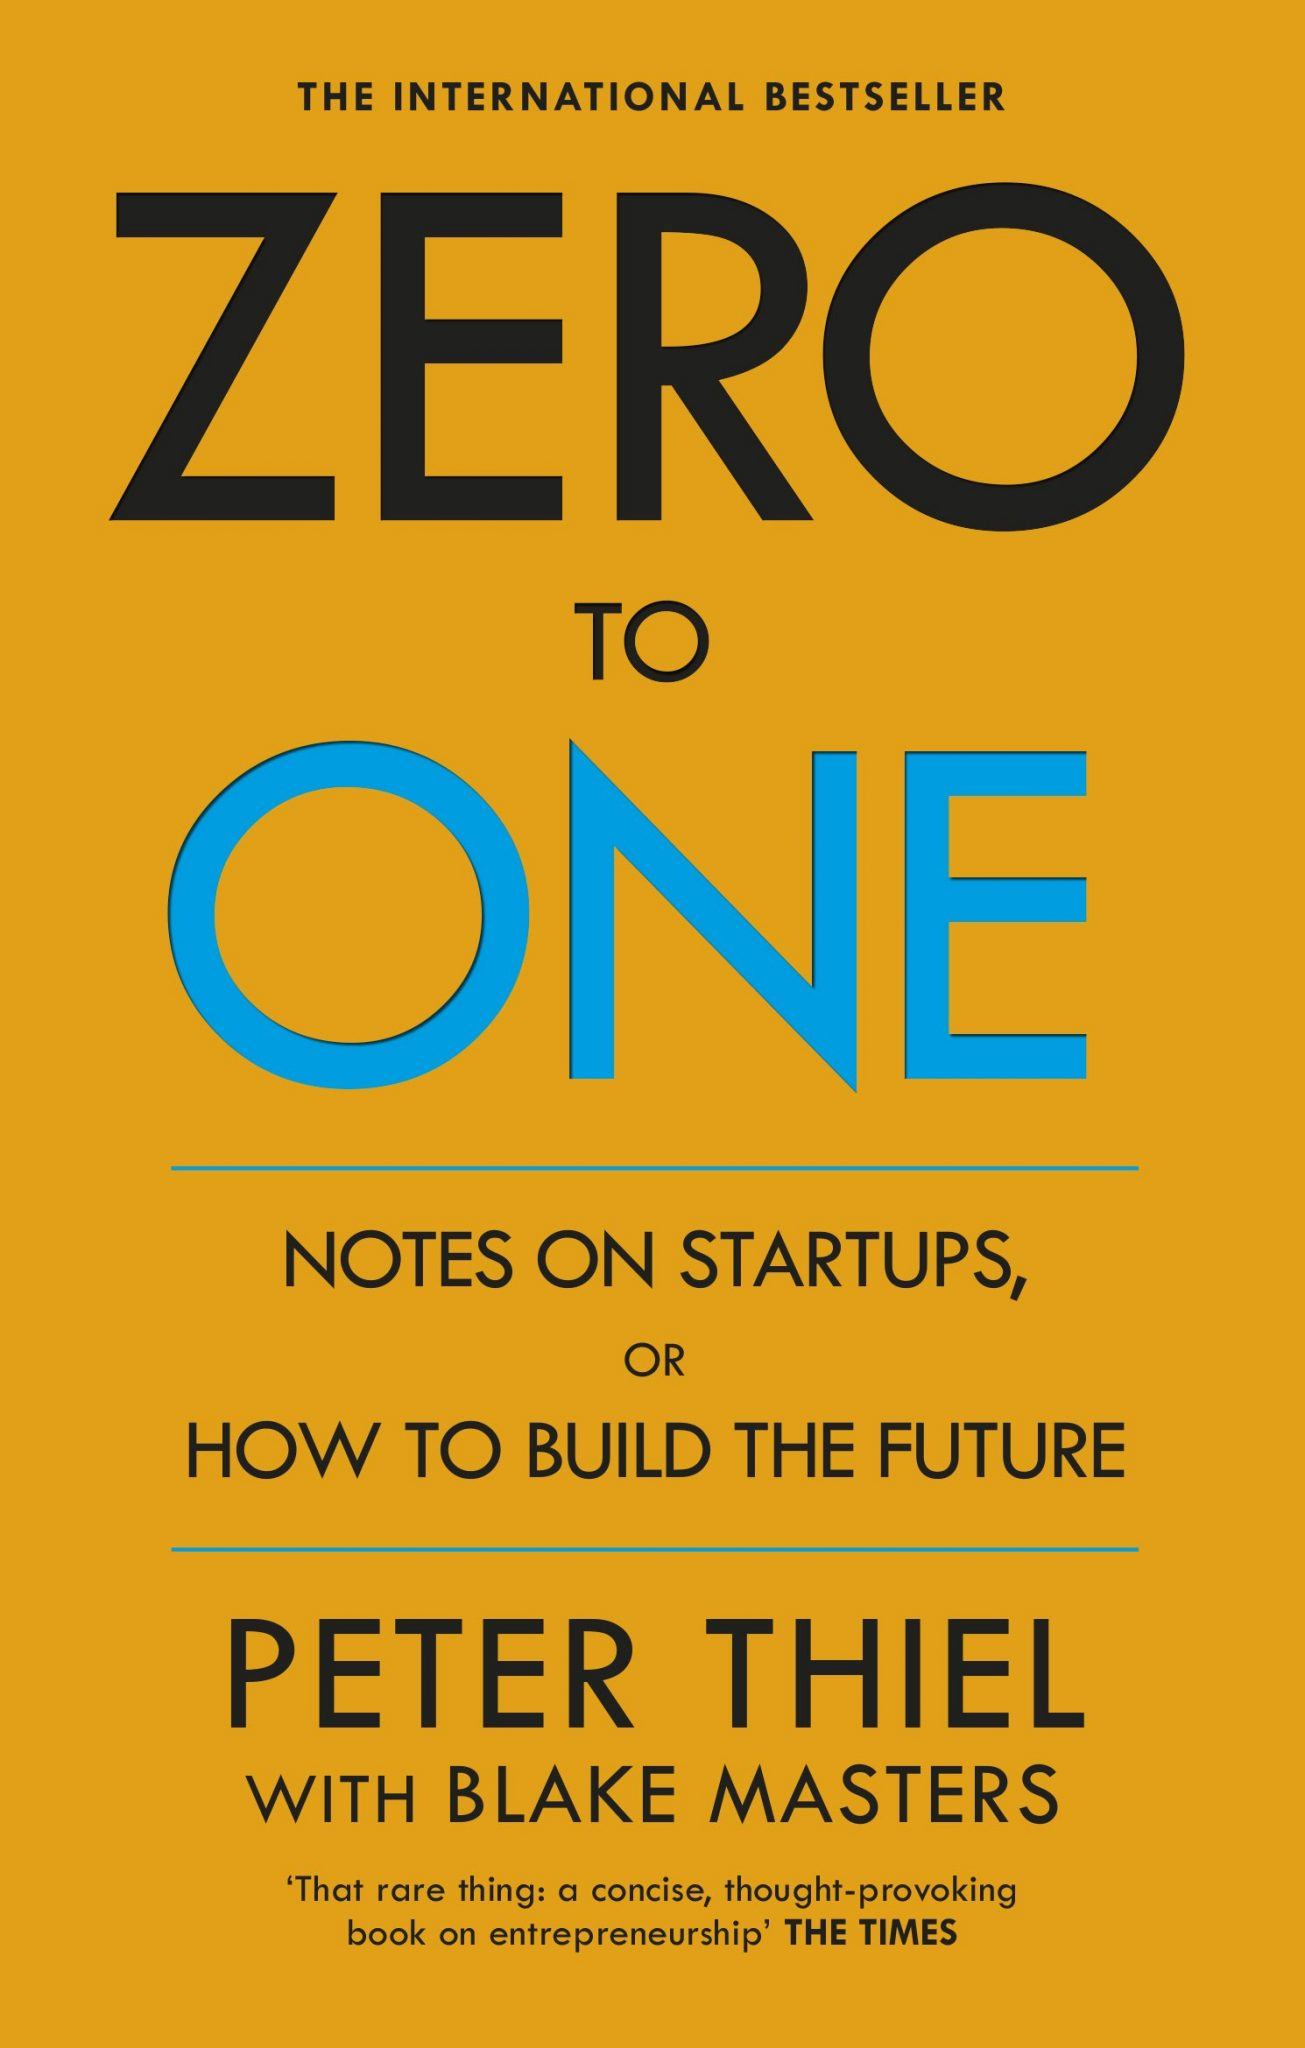 Book Review - Zero to One by Peter Thiel